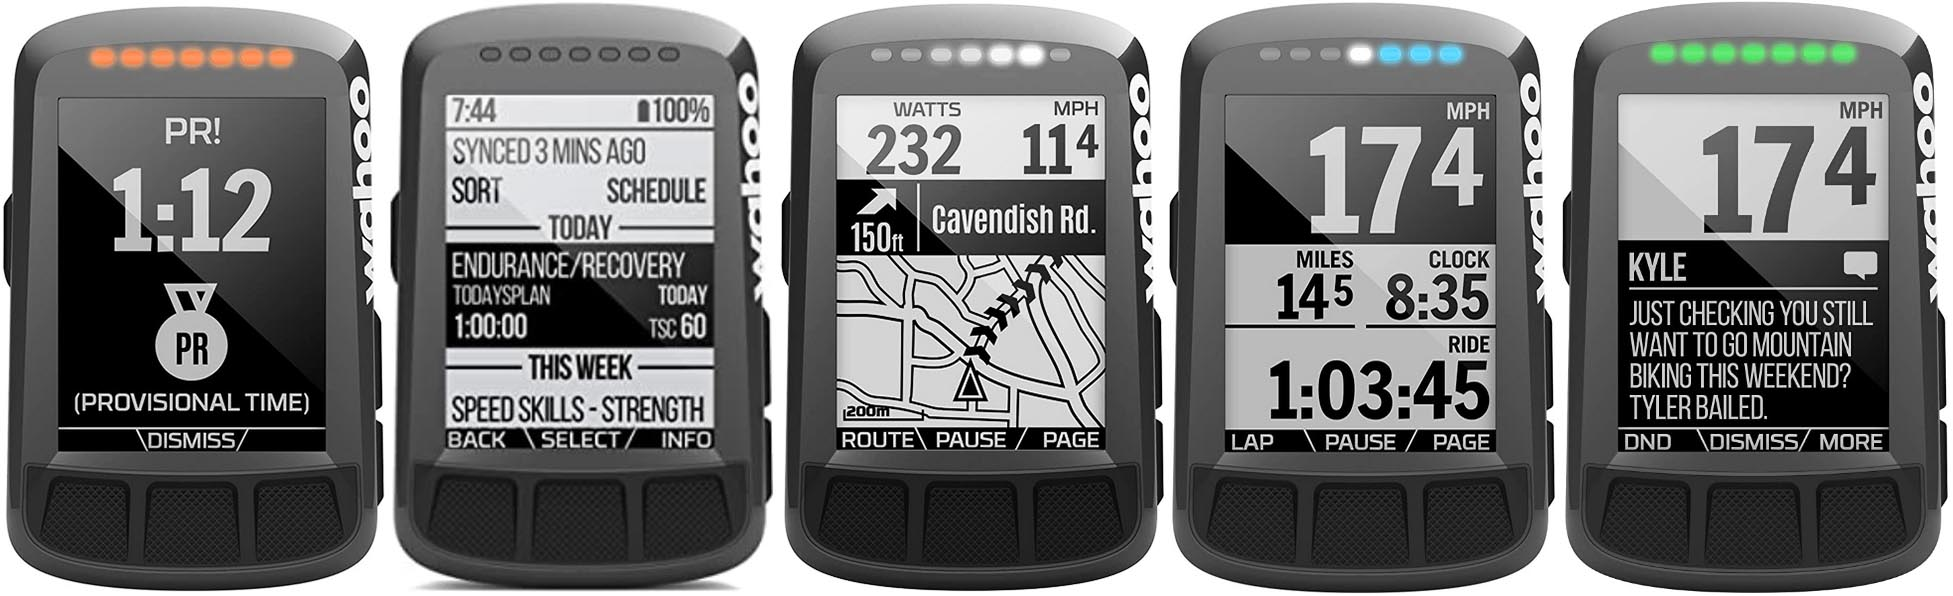 Garmin Edge 530 vs Wahoo ELEMNT Bolt. The Wahoo ELMENT Bolt offers pretty much everything a cyclist could want, at a lower price point